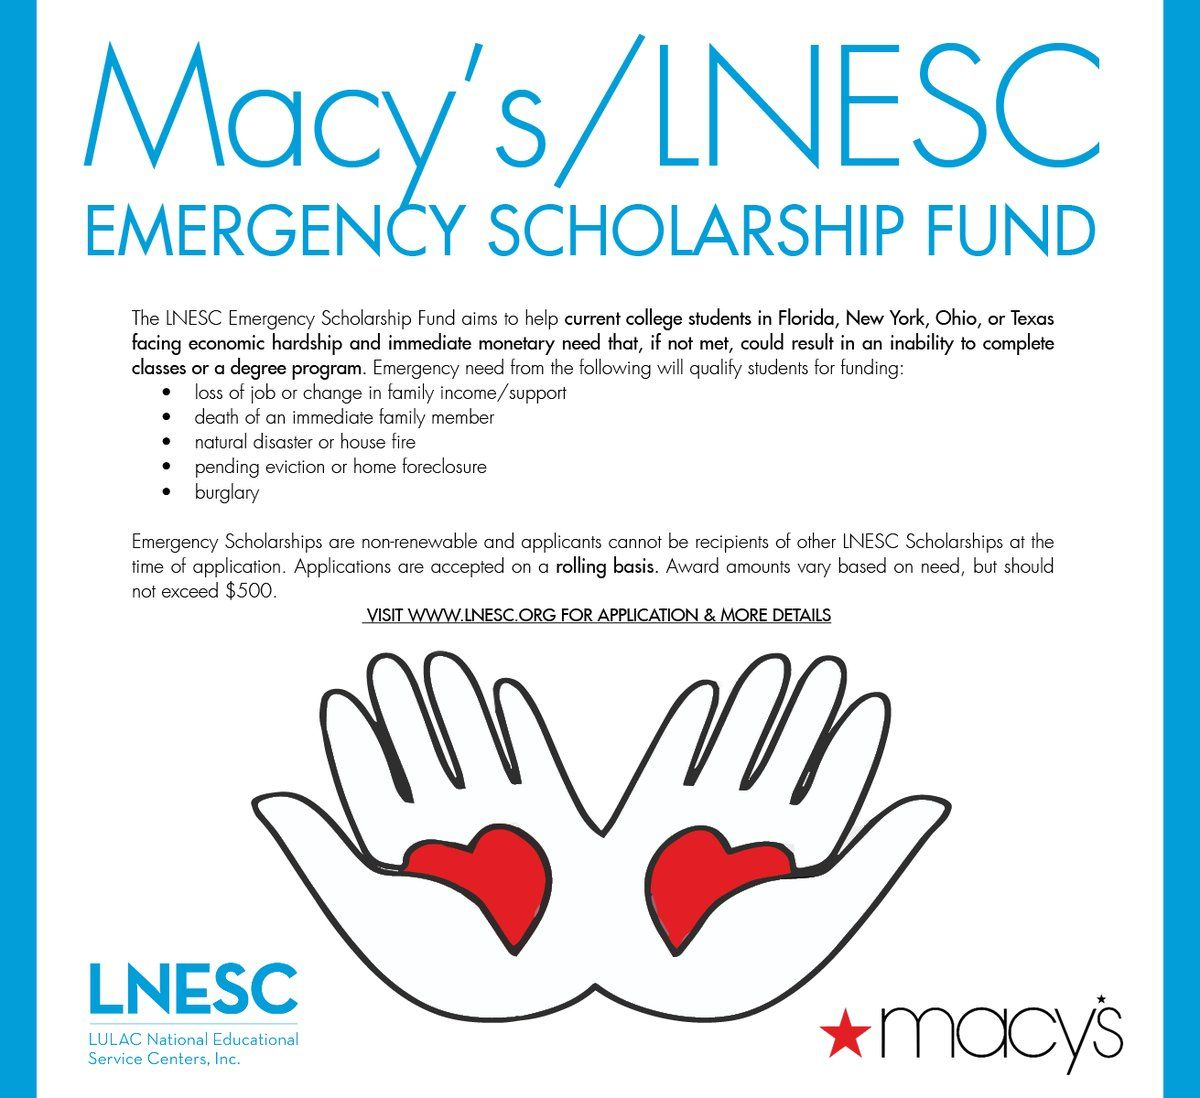 A 500 Emergency Scholarship Fund For Any College Student Who